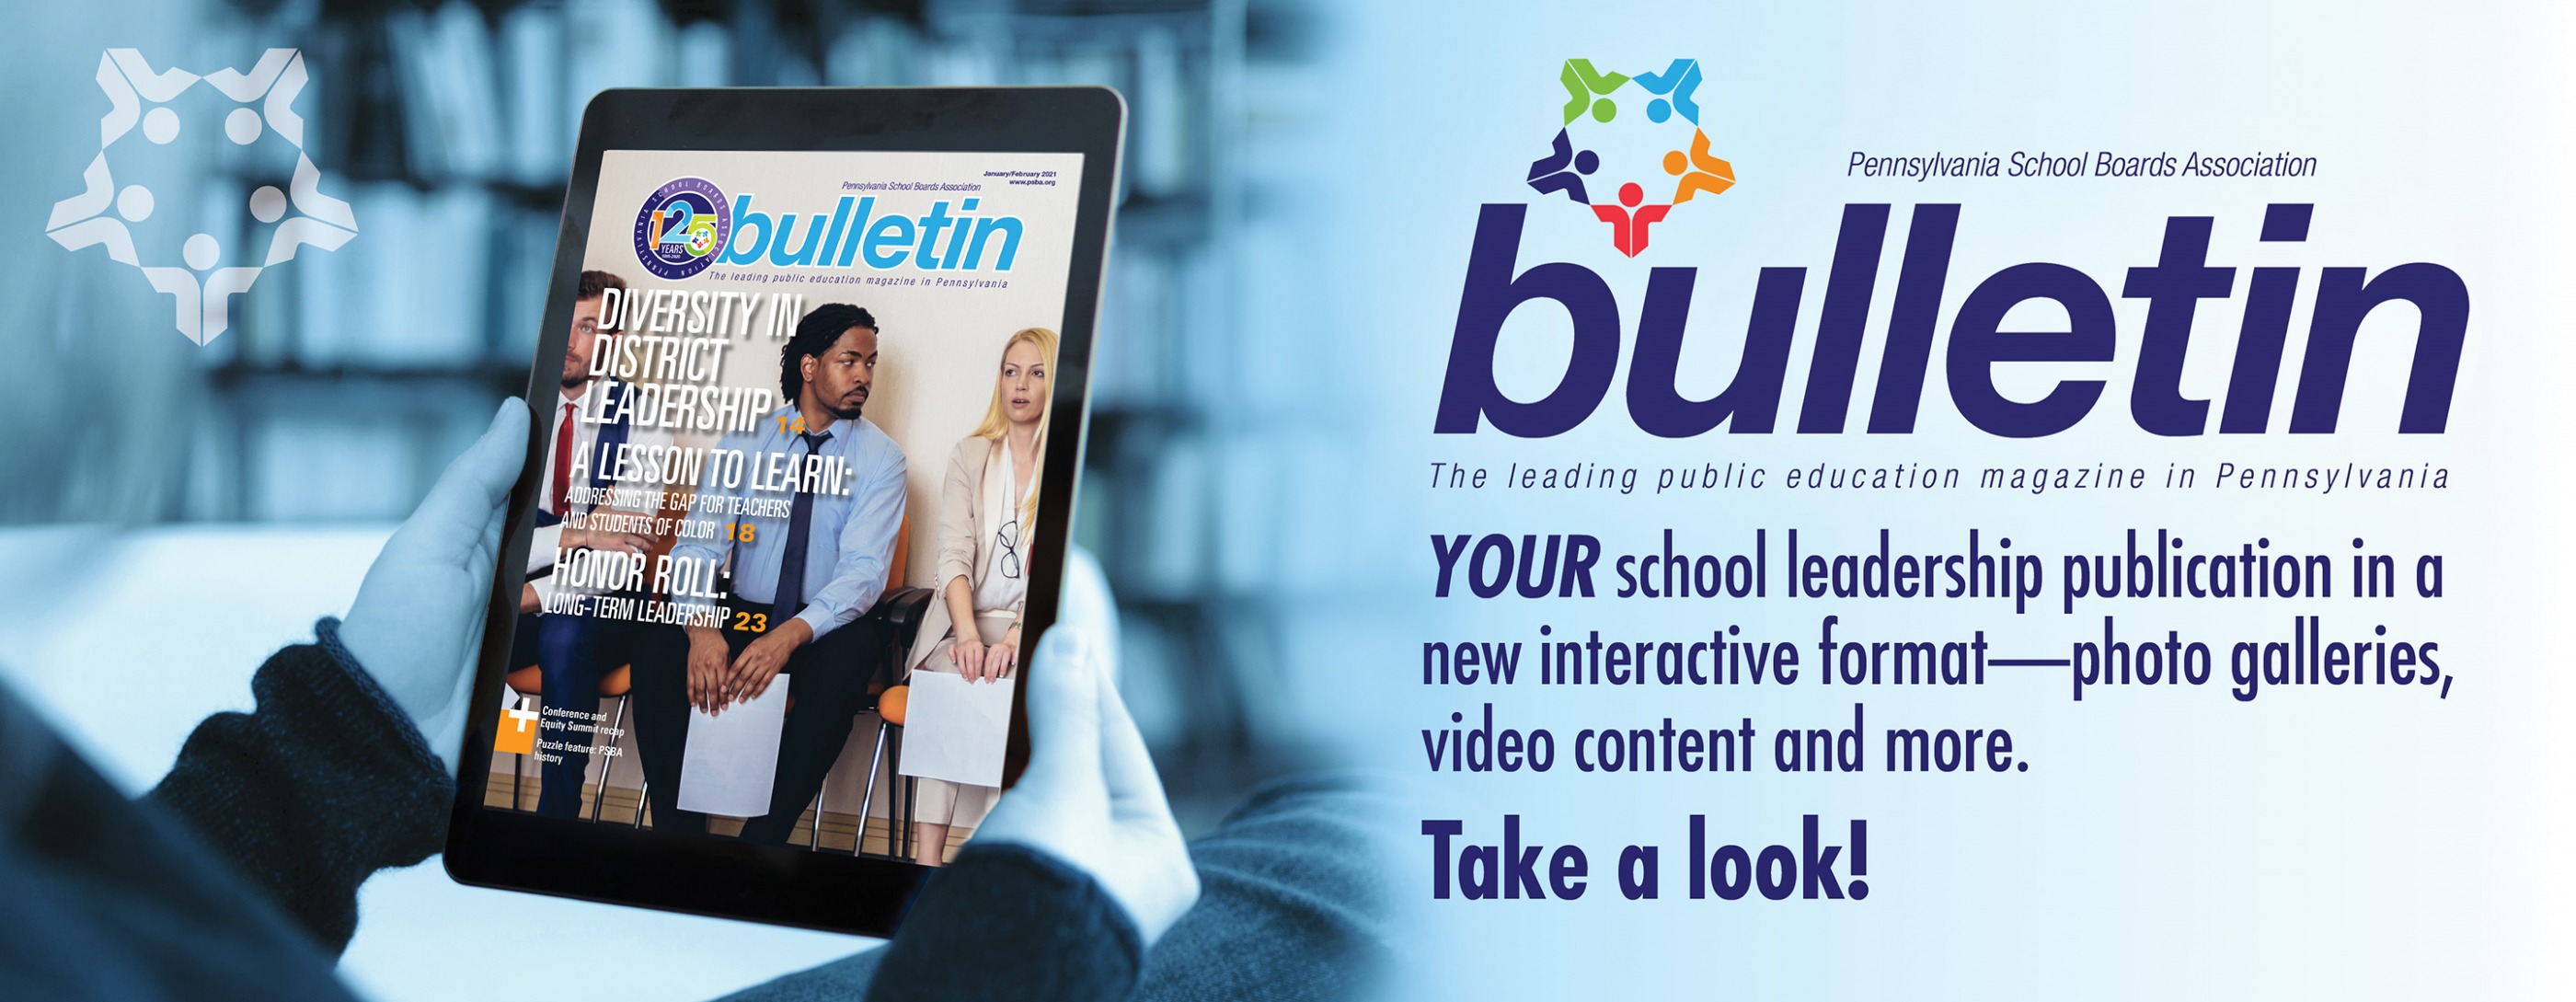 Interact with the Bulletin magazine